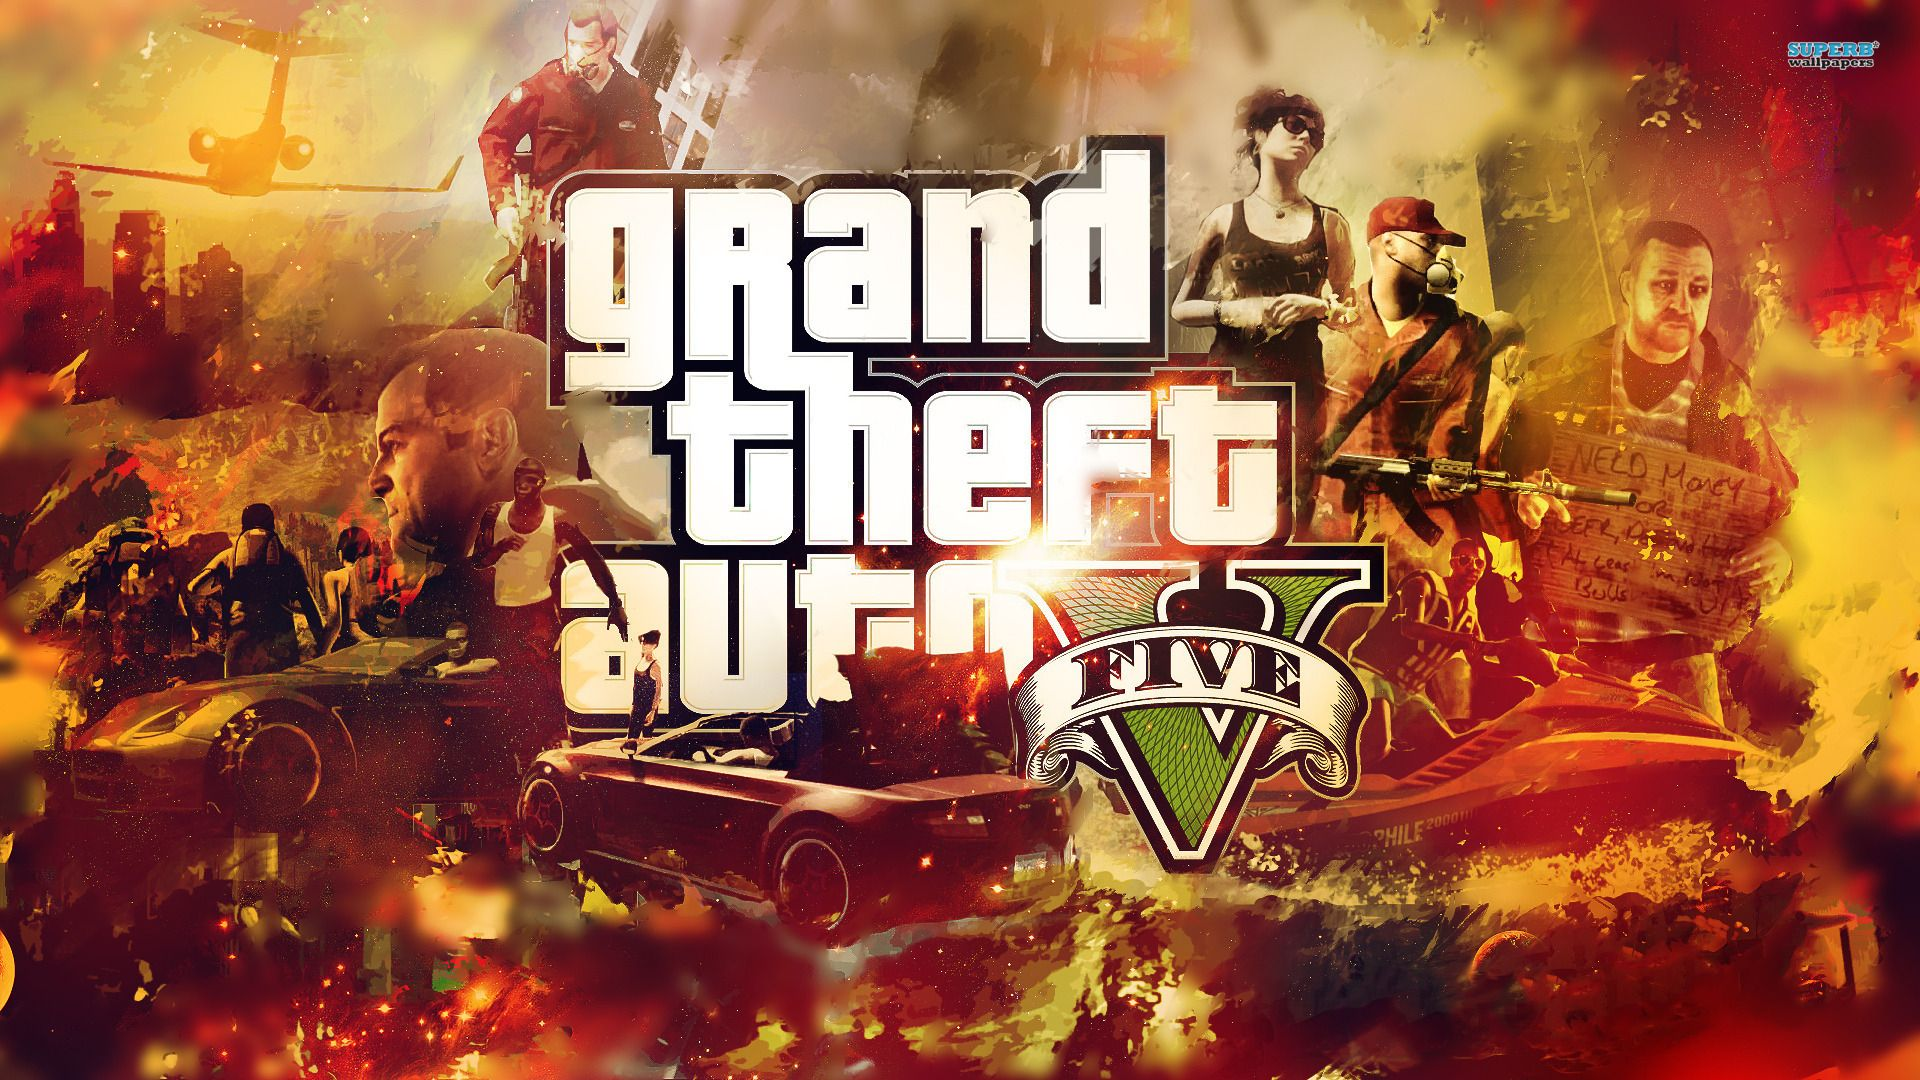 Gta 5 Hd Wide Wallpapers For Your Desktop